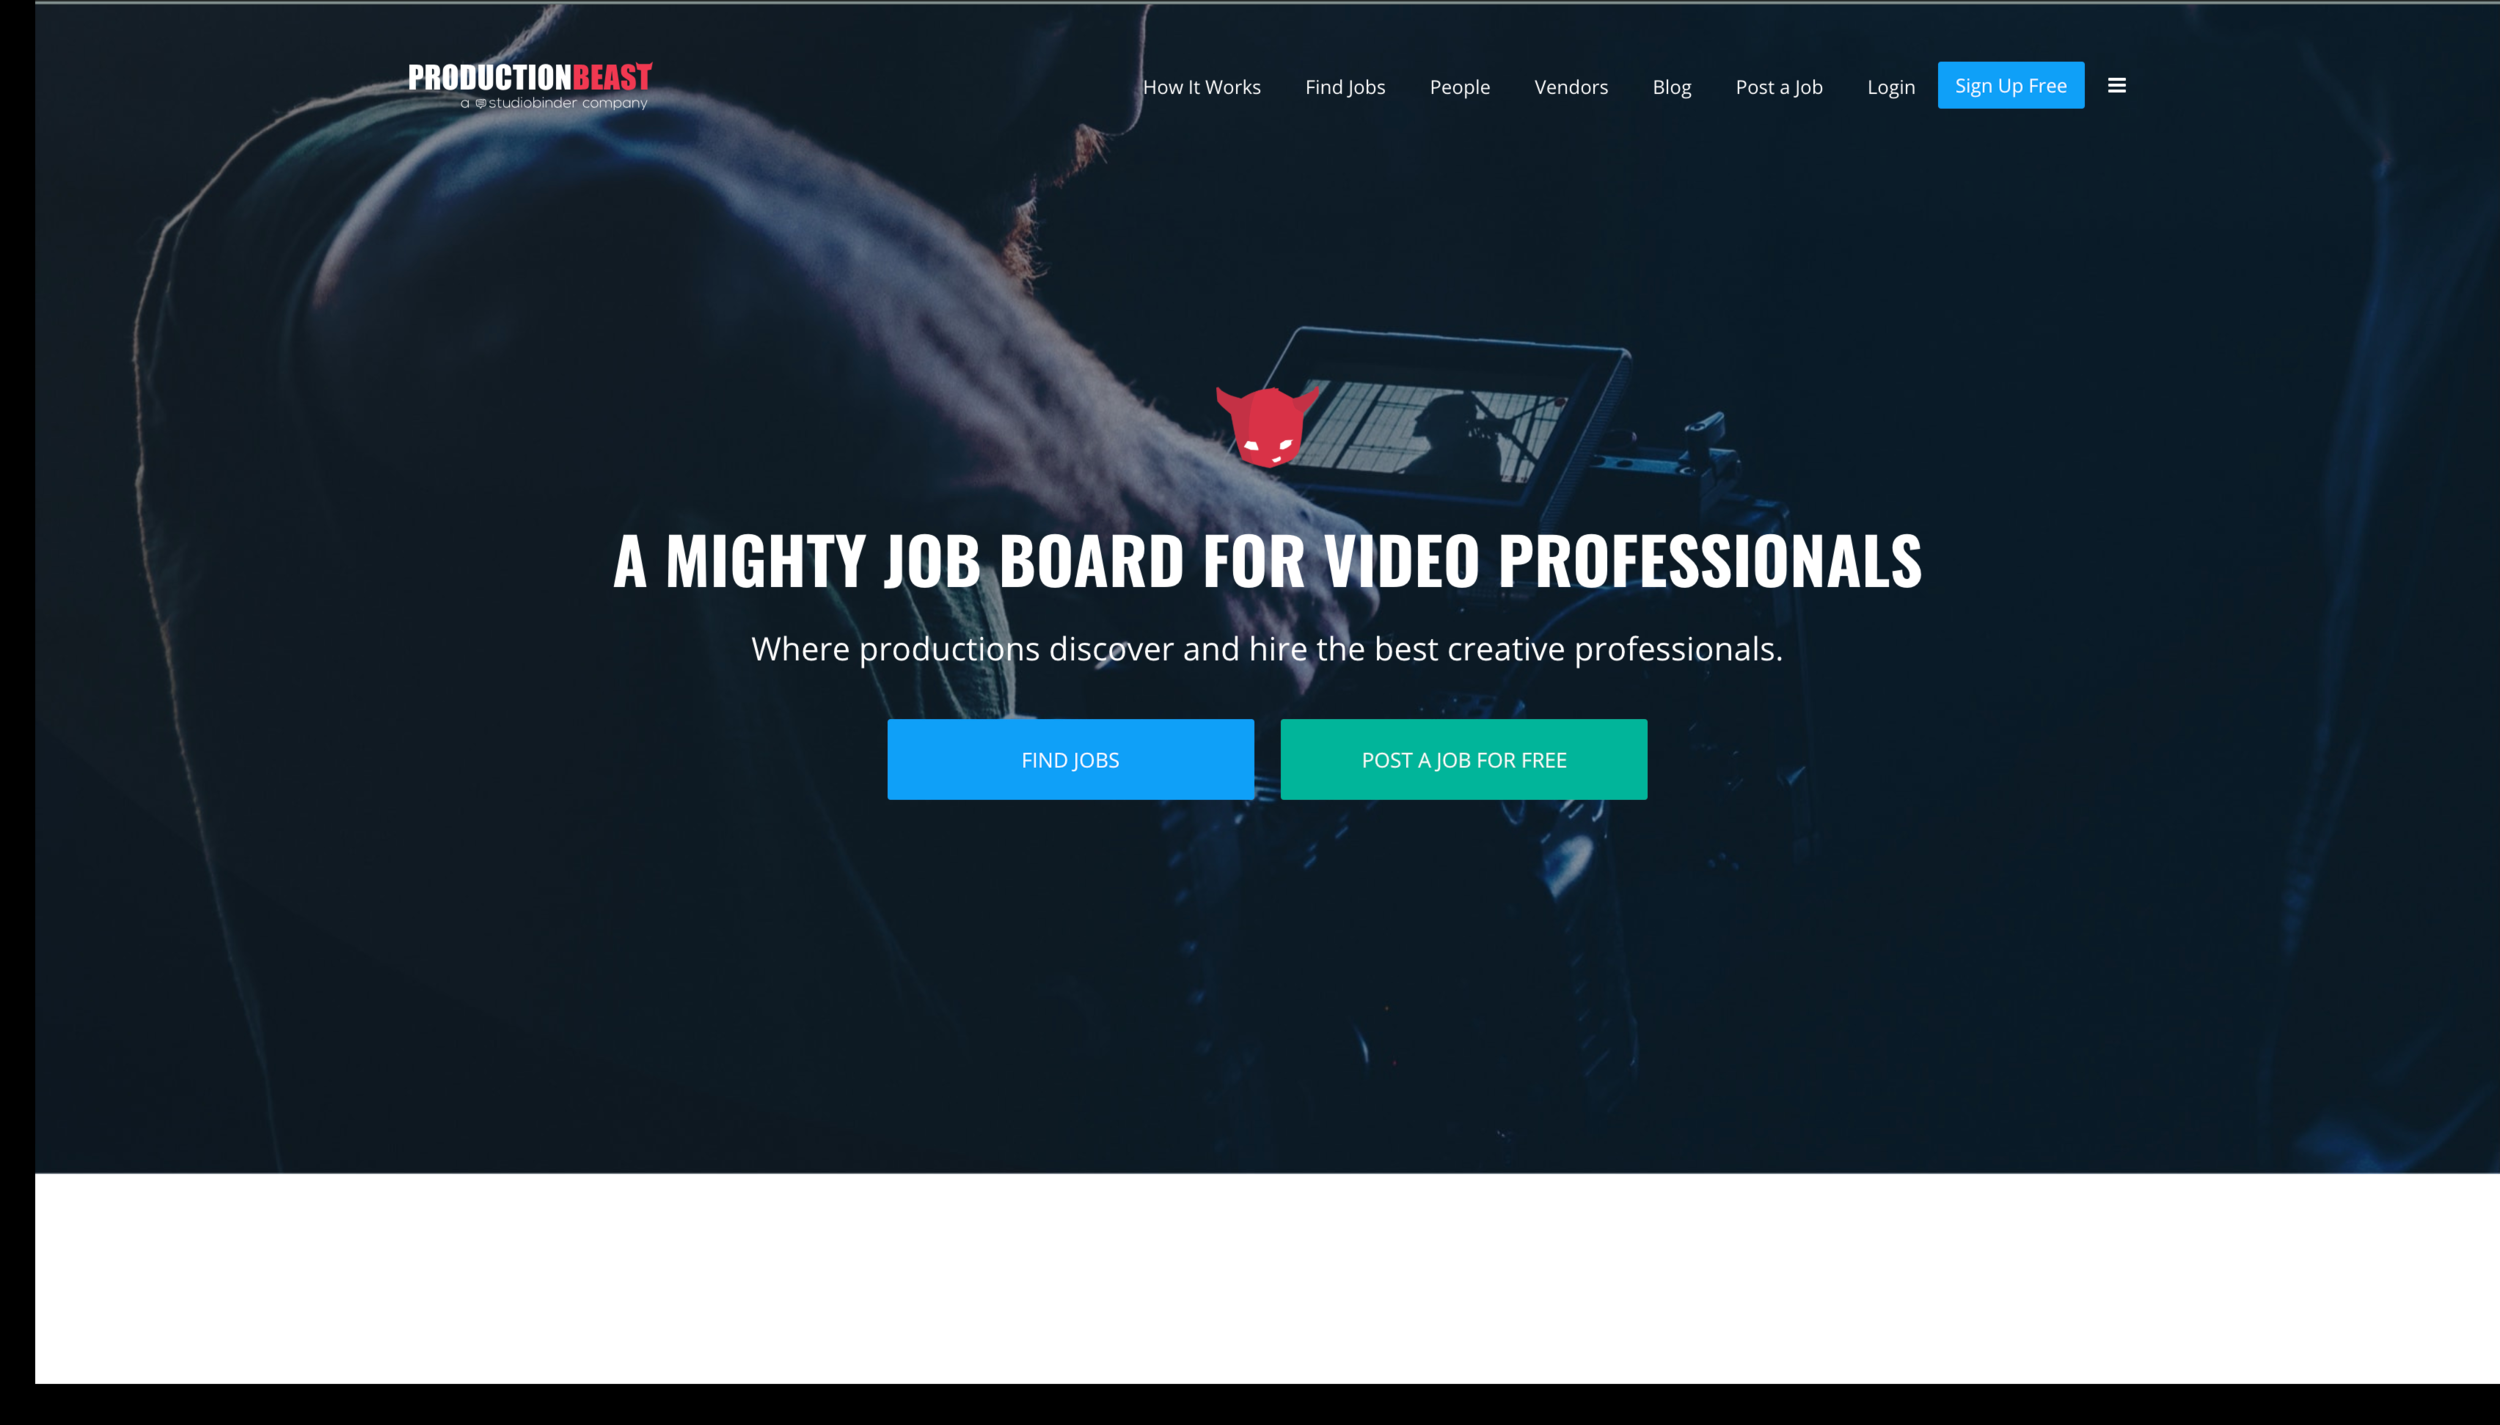 Production Beast - WEB: https://www.productionbeast.comWHAT'S IT FOR? Crew Hiring